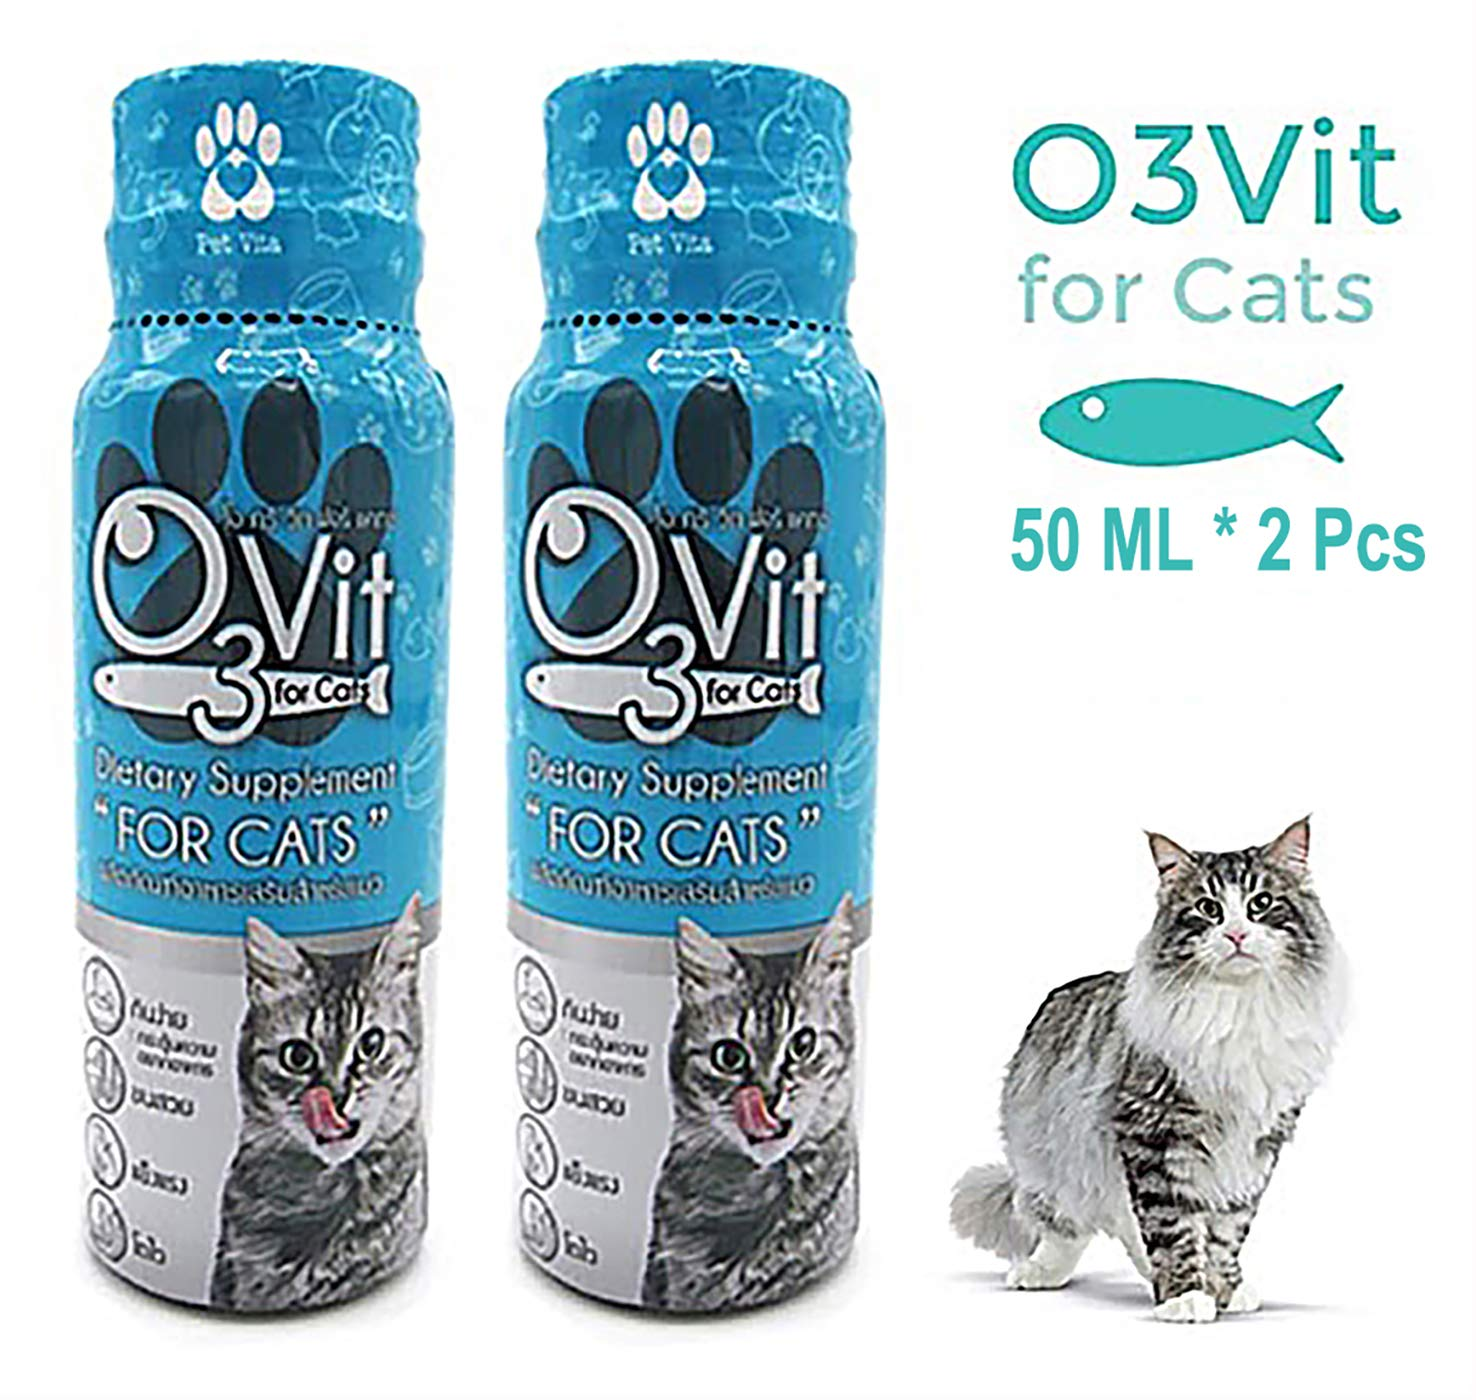 X2 Pcs(100ml) Multivitamin Daily Essential Cat Food Vitamins & Minerals Omega3, Helps Support Health, More Fat, Digestion, Skin, Coat, Allergy Immune Supplement Nourished Blood & Eye by OVIT